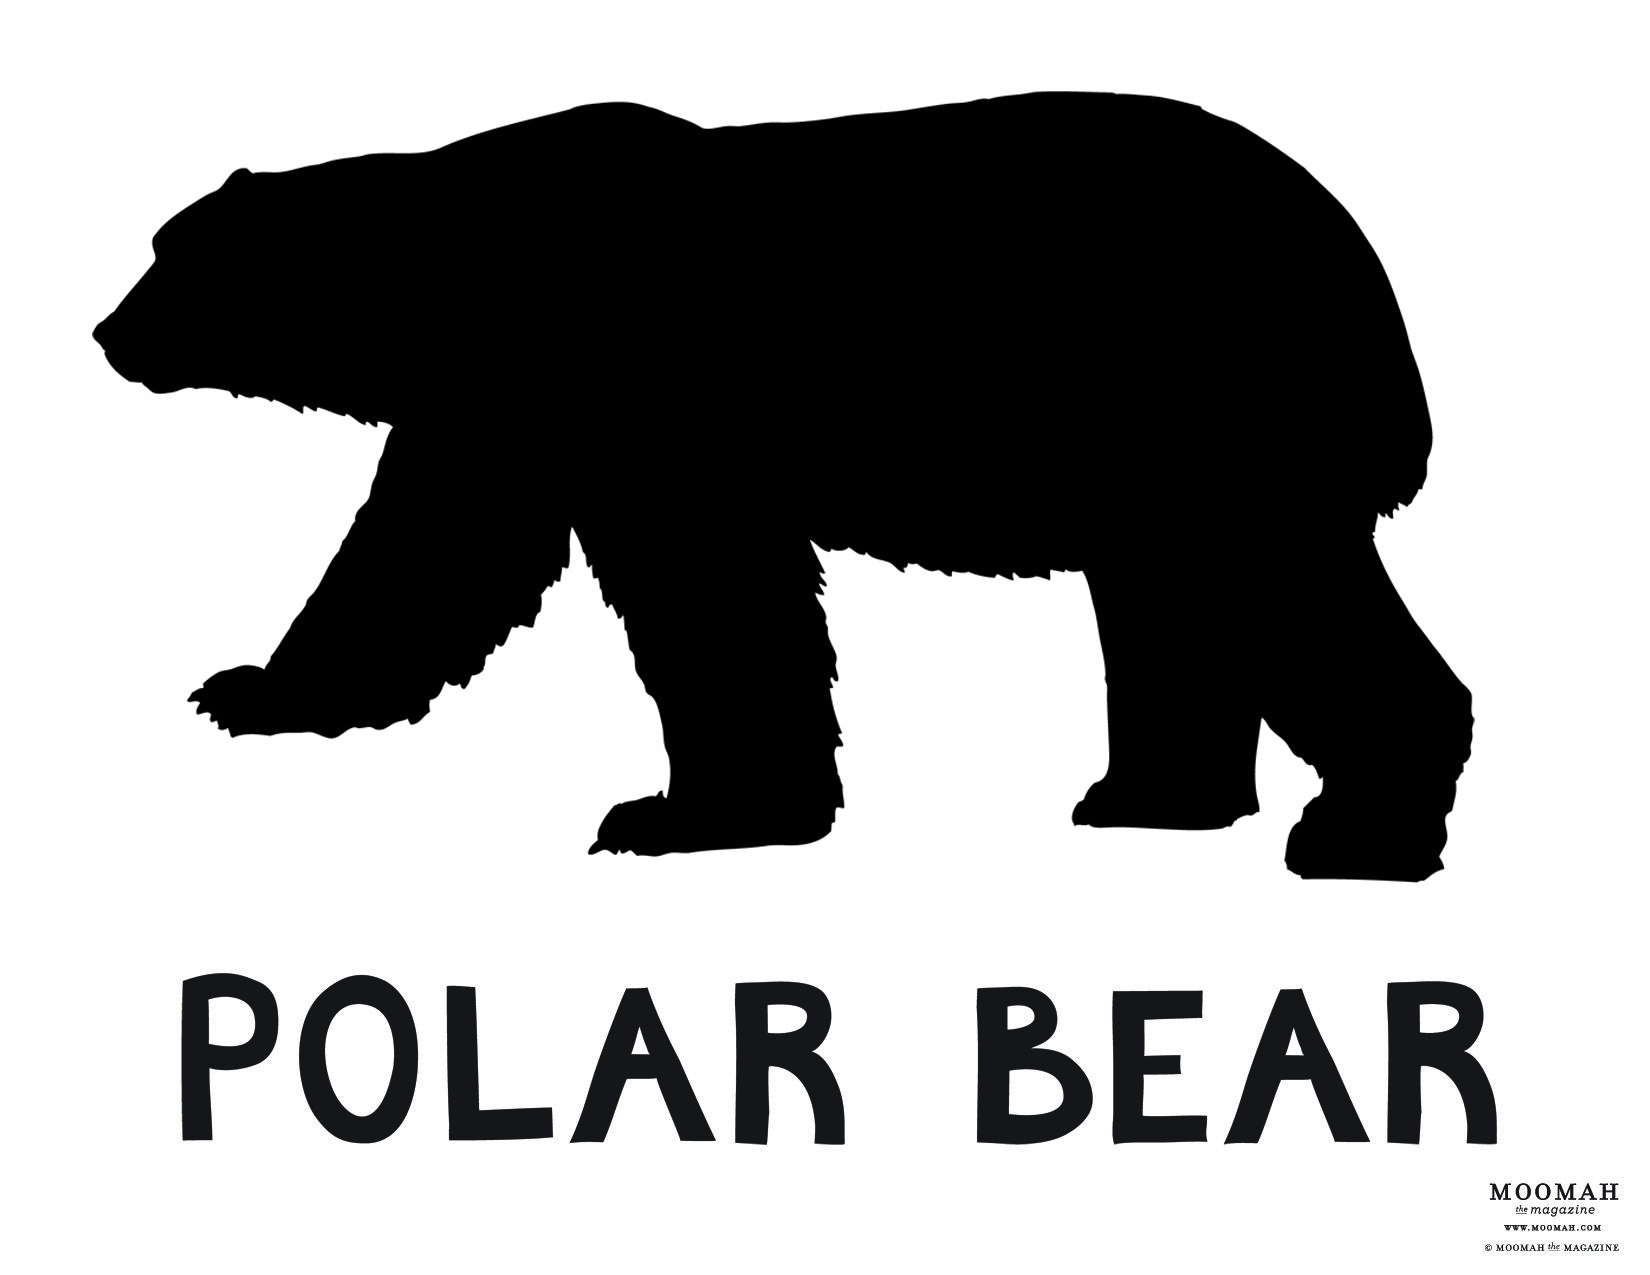 polar bear silhouette  google search  tattoos  pinterest  bear  - polar bear silhouette  google search